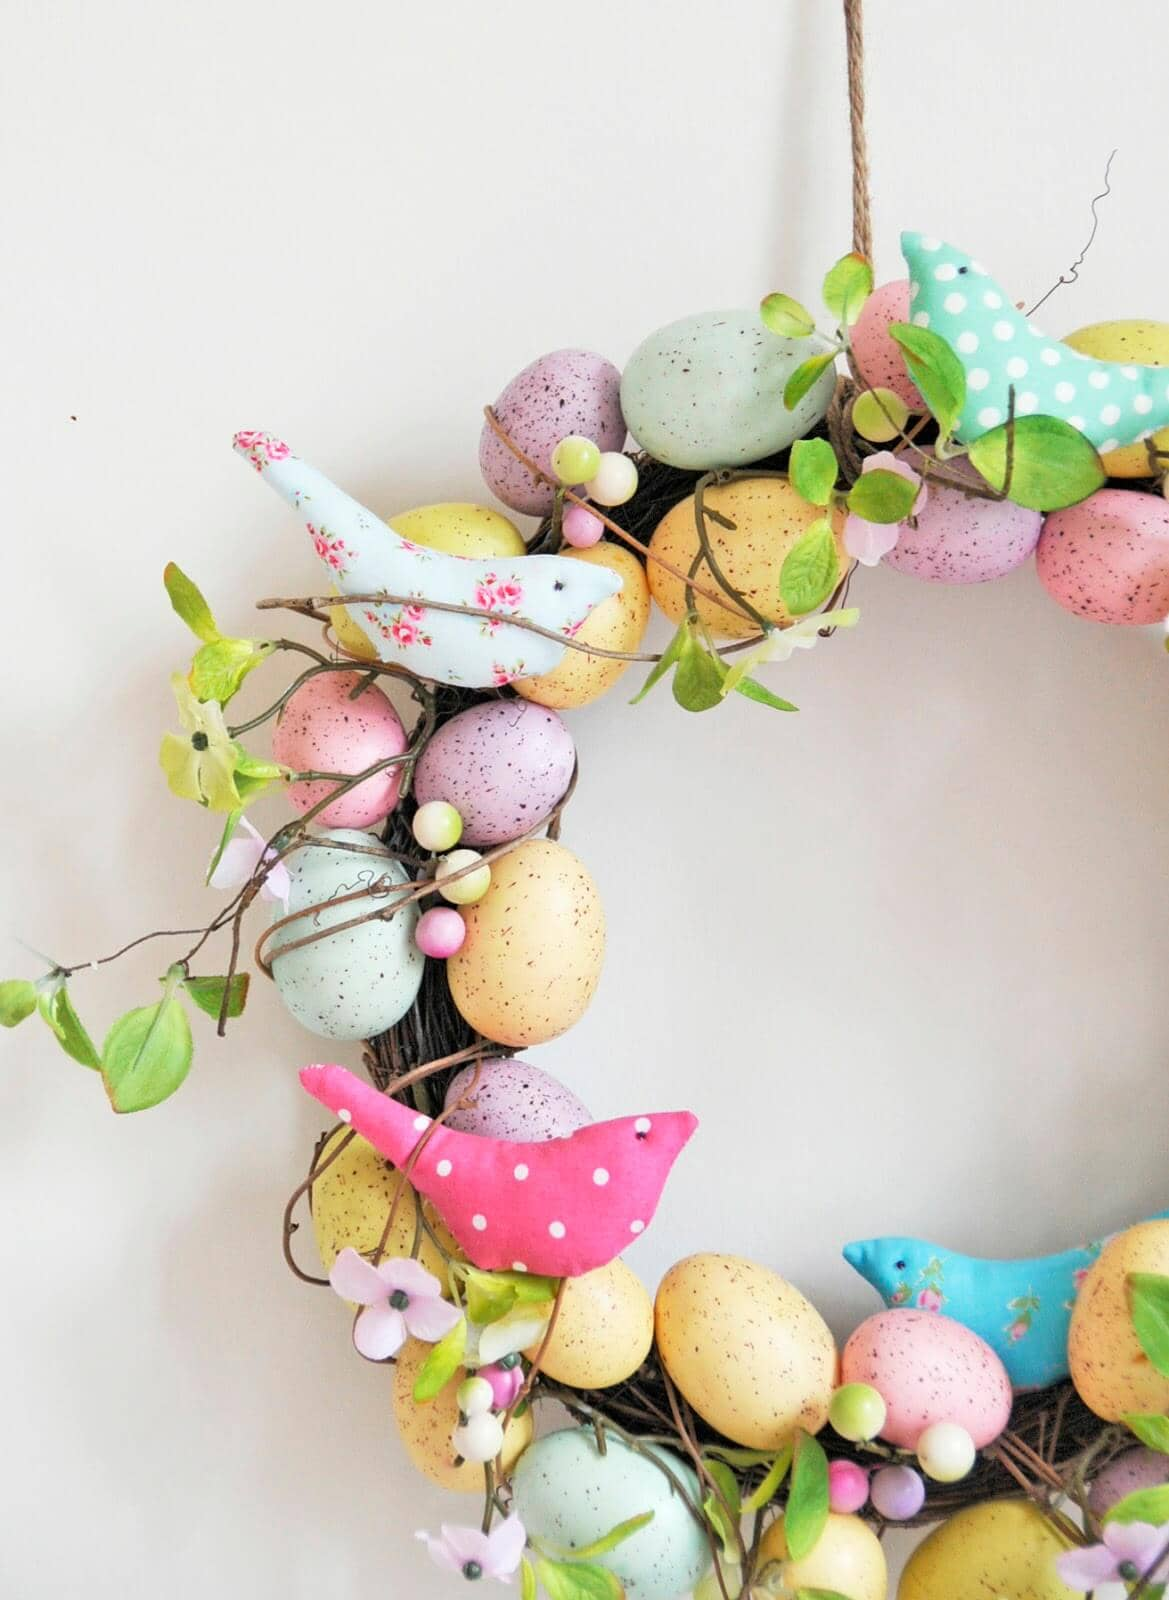 Stitched Songbirds Nestled in Wreath With Eggs